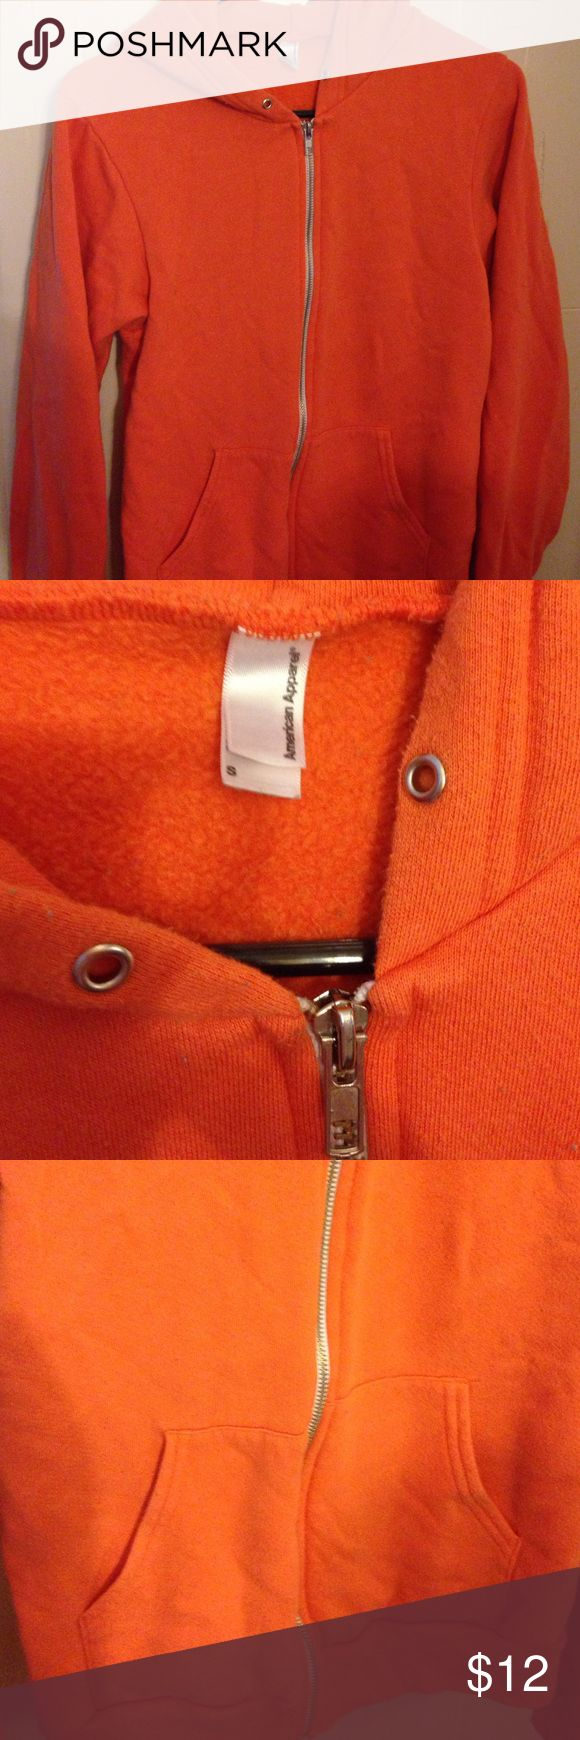 american apparel orange hoodie small no strings One of the best sellers from American Apparel, ORANGE zip up hoodie (strings are gone) very warm cute and comfortable. 50% cotton 50% polyester. American Apparel Jackets & Coats